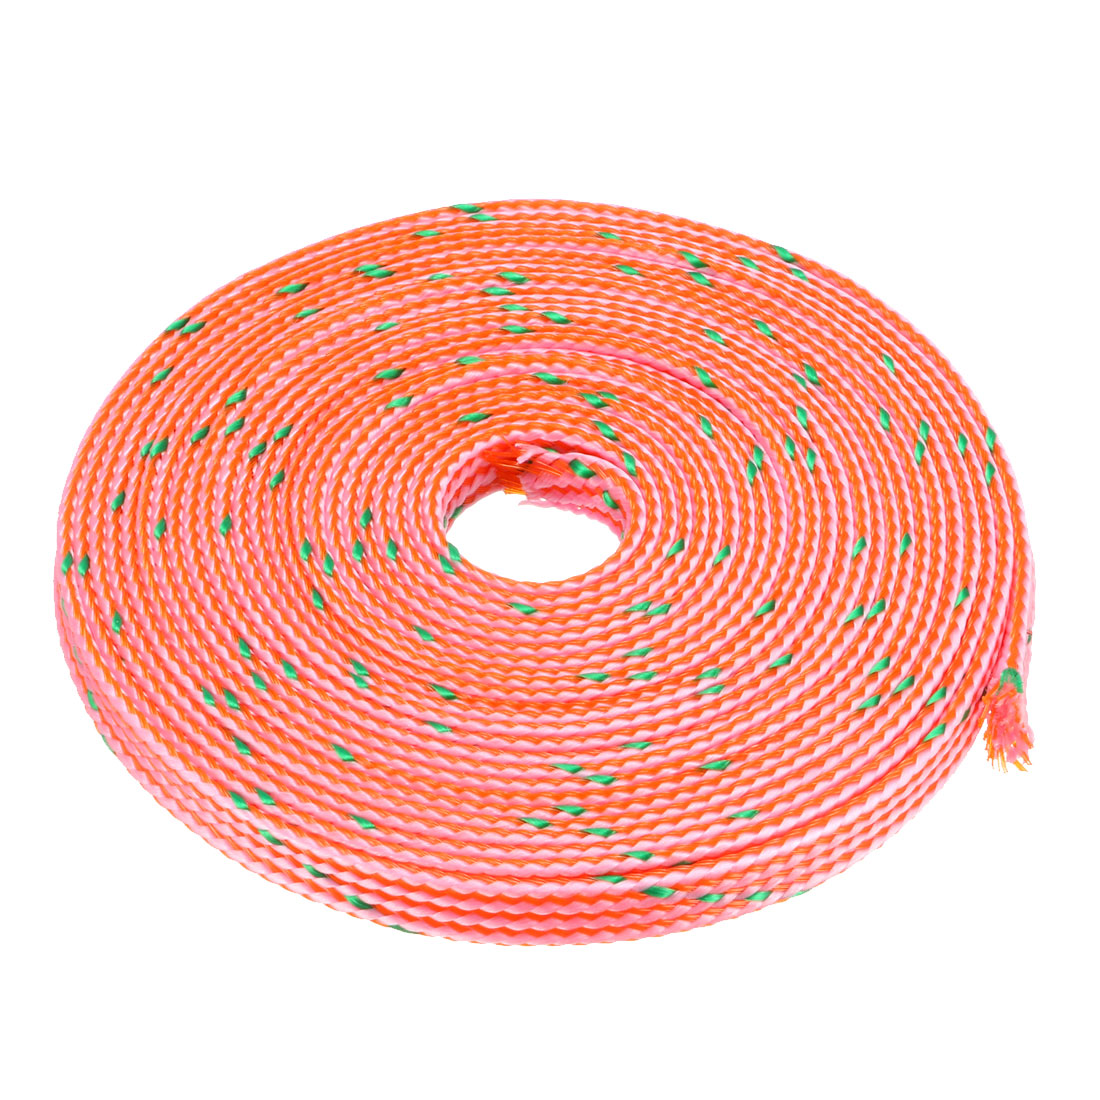 4mm Dia Tight Braided PET Expandable Sleeving Cable Wrap Sheath Pink Green 16Ft